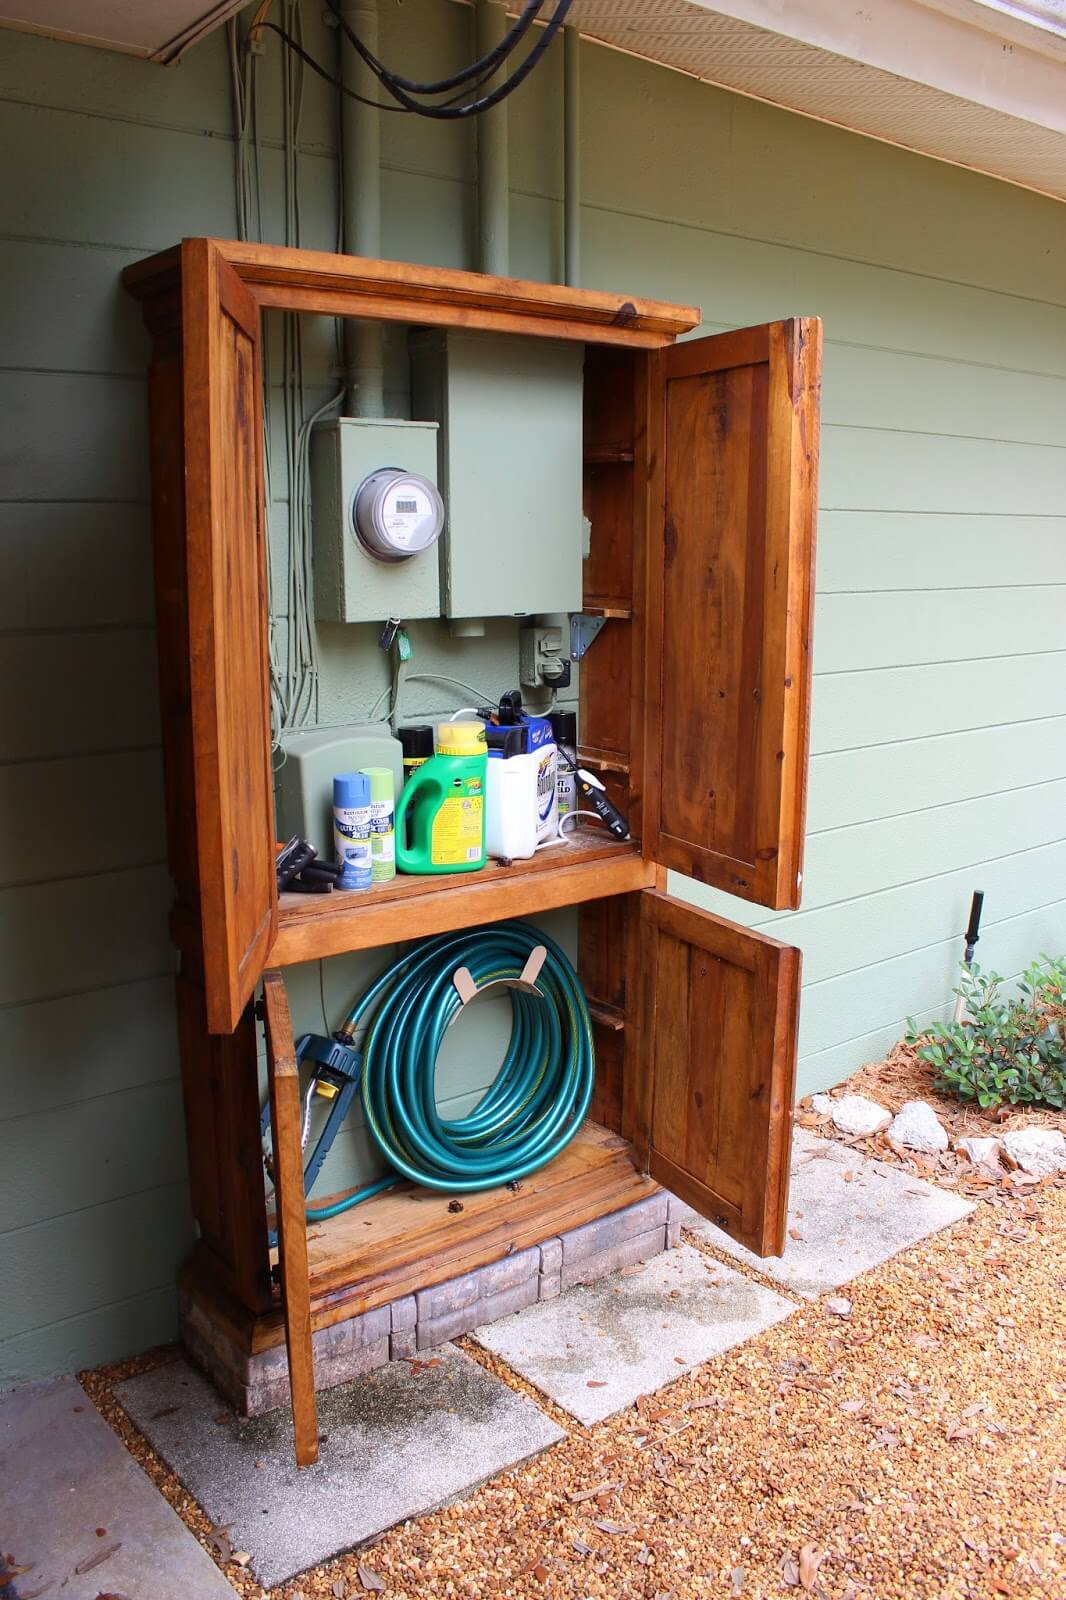 Lovely Cabinet Hides Utility Box and Garden Tools